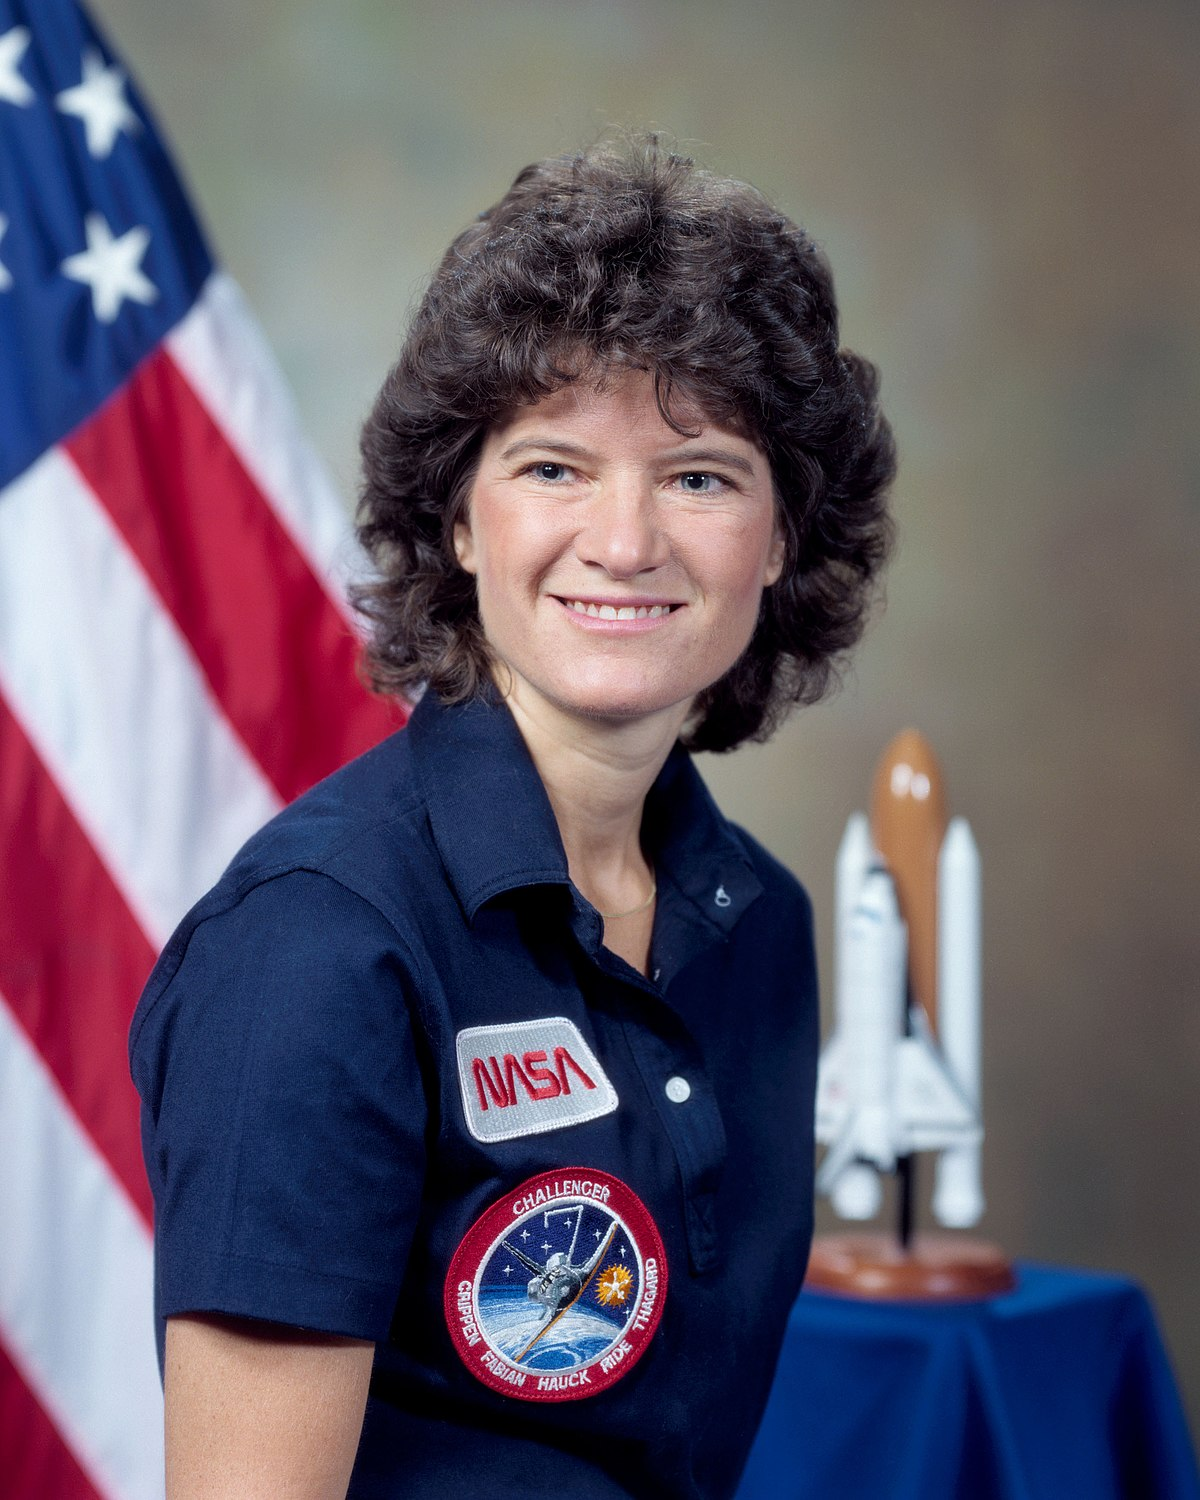 American physicist and astronaut